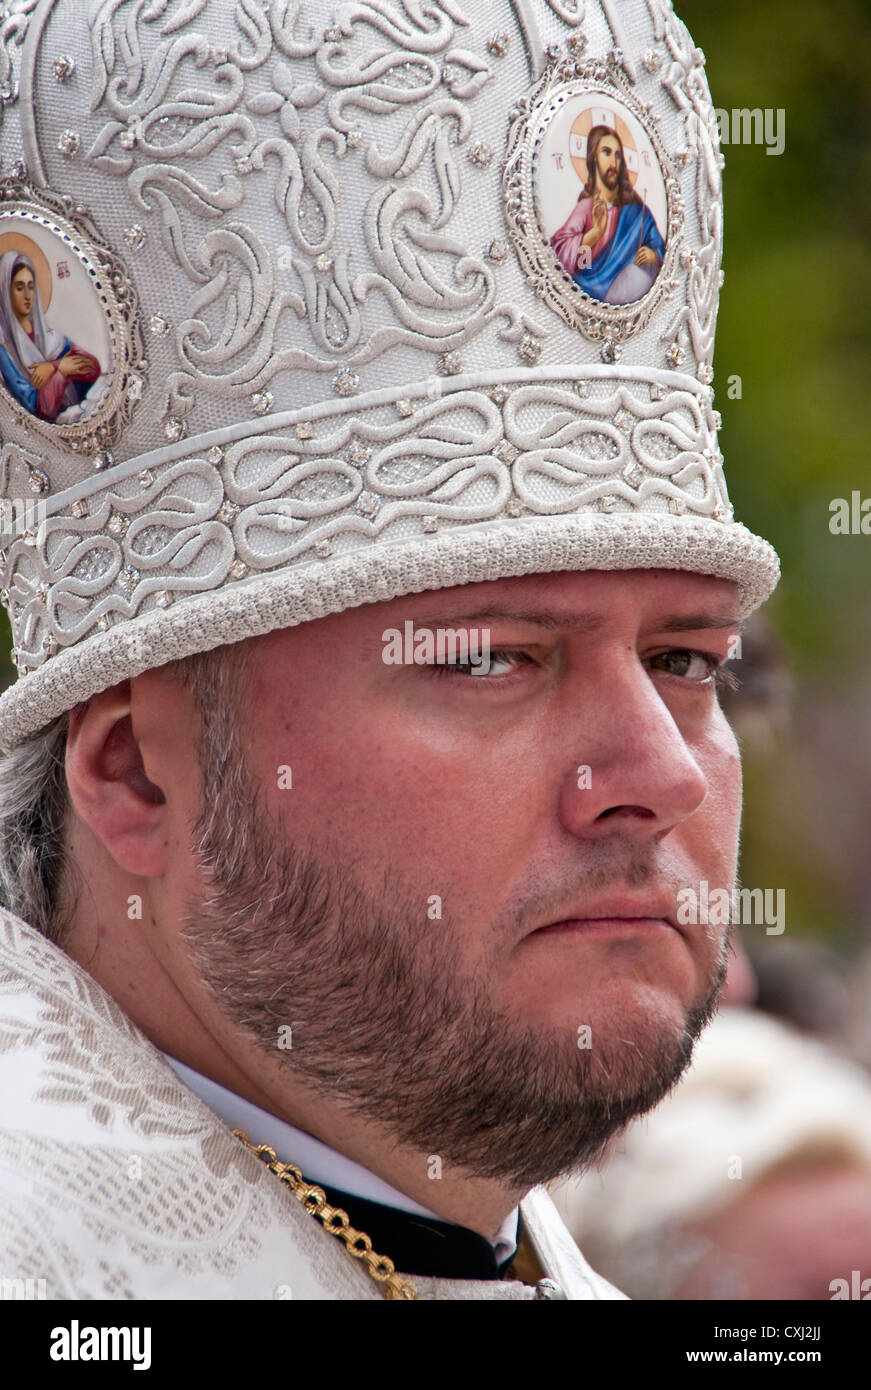 Ukrainian Orthodox Christian priest in Odessa, Ukraine. - Stock Image